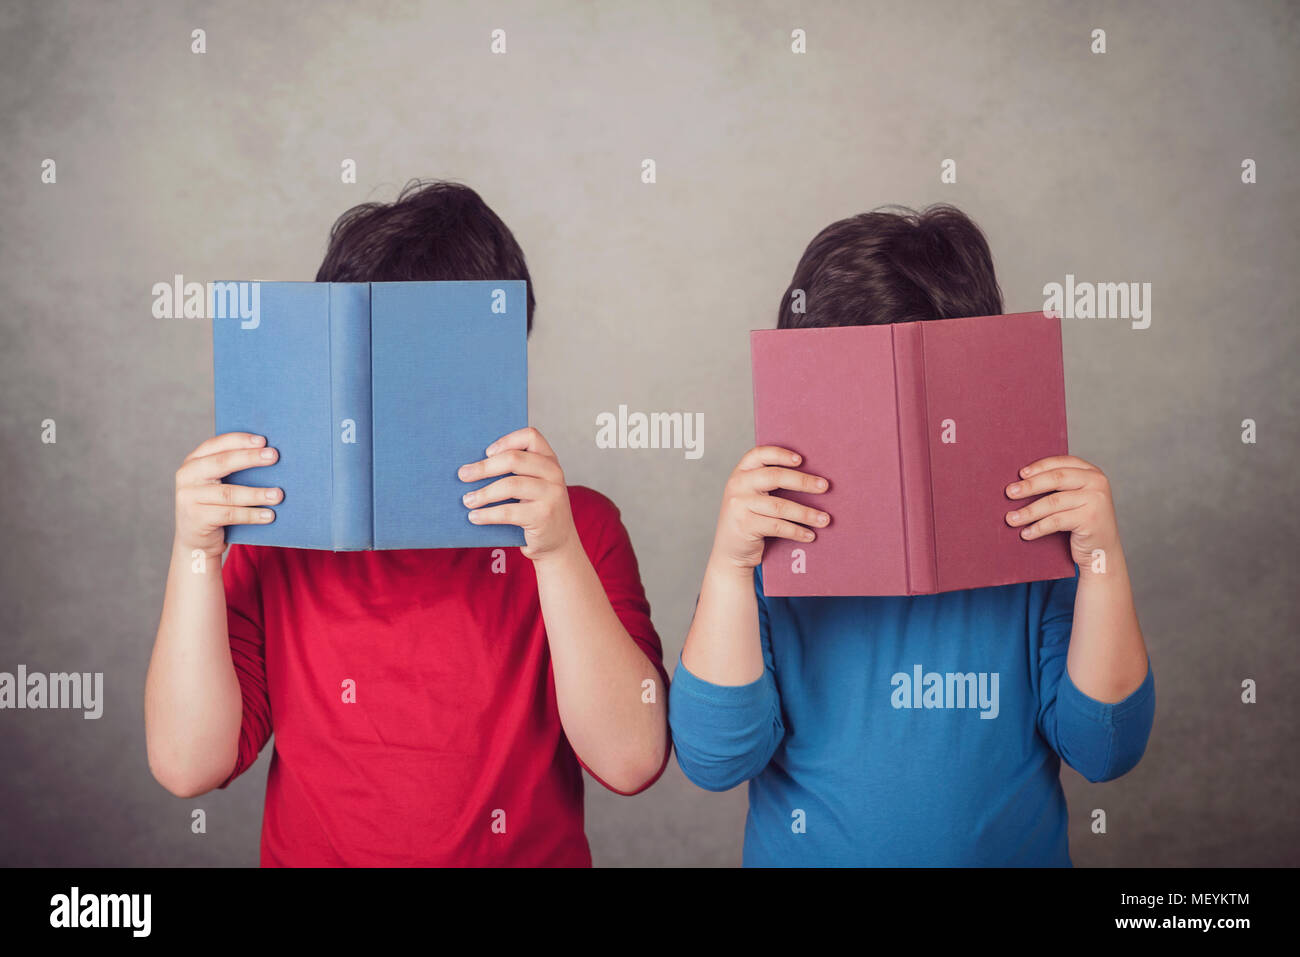 children reading a book on gray background - Stock Image